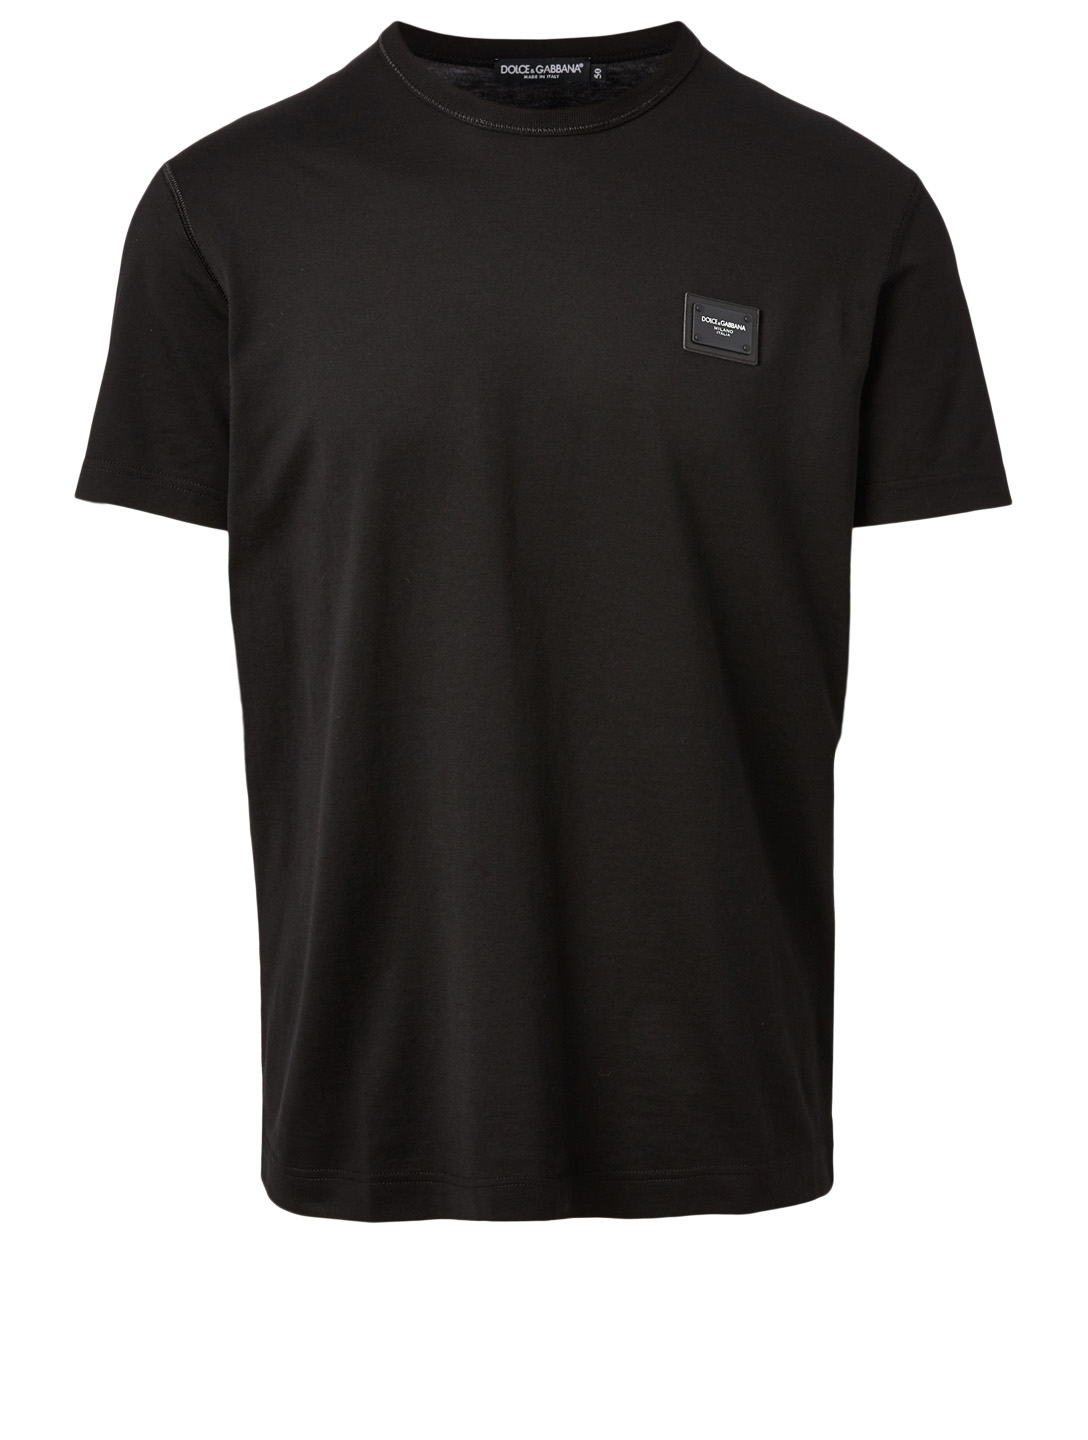 DOLCE & GABBANA Cotton T-Shirt With Logo Patch Men's Black